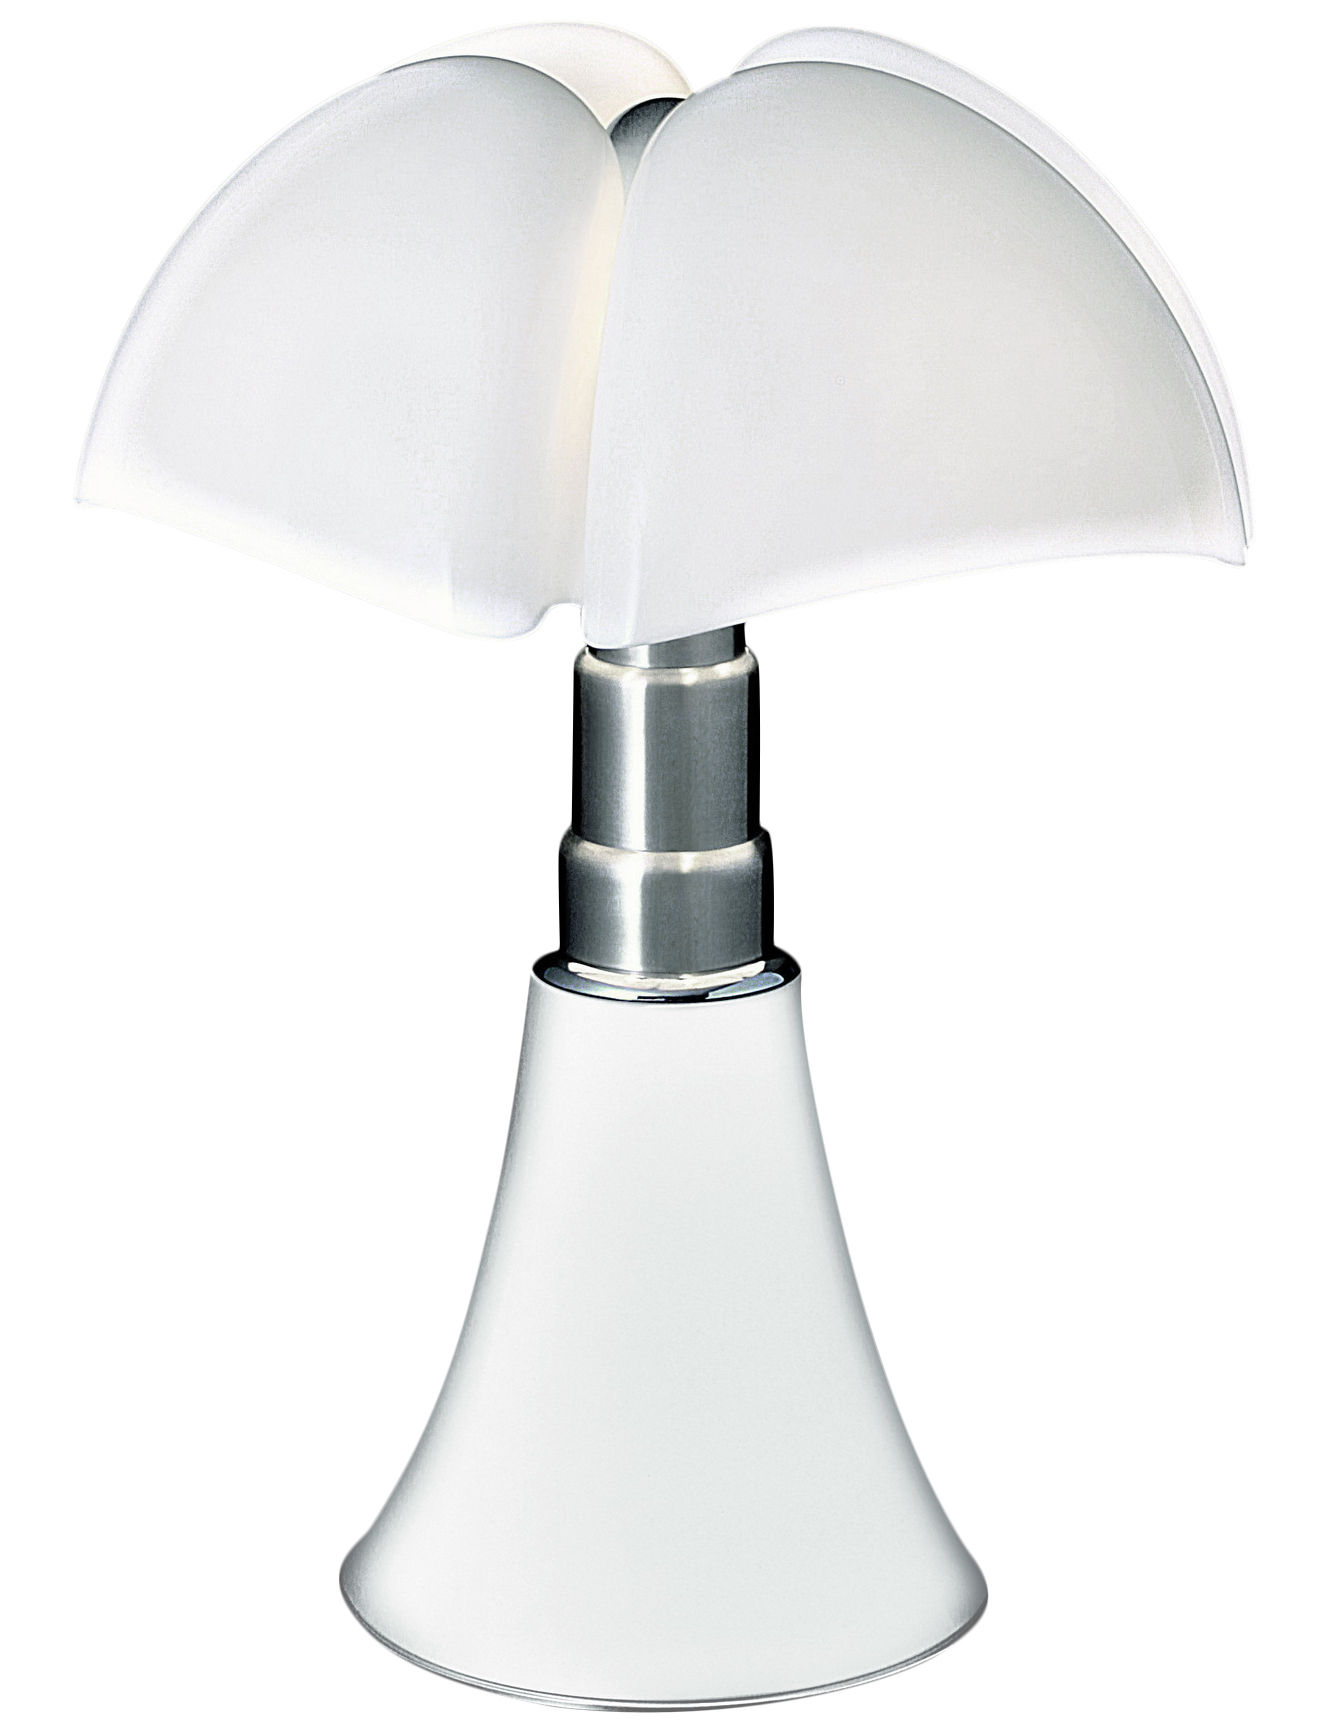 Lampe pipistrello martinelli luce made in design for Lampe de table rona